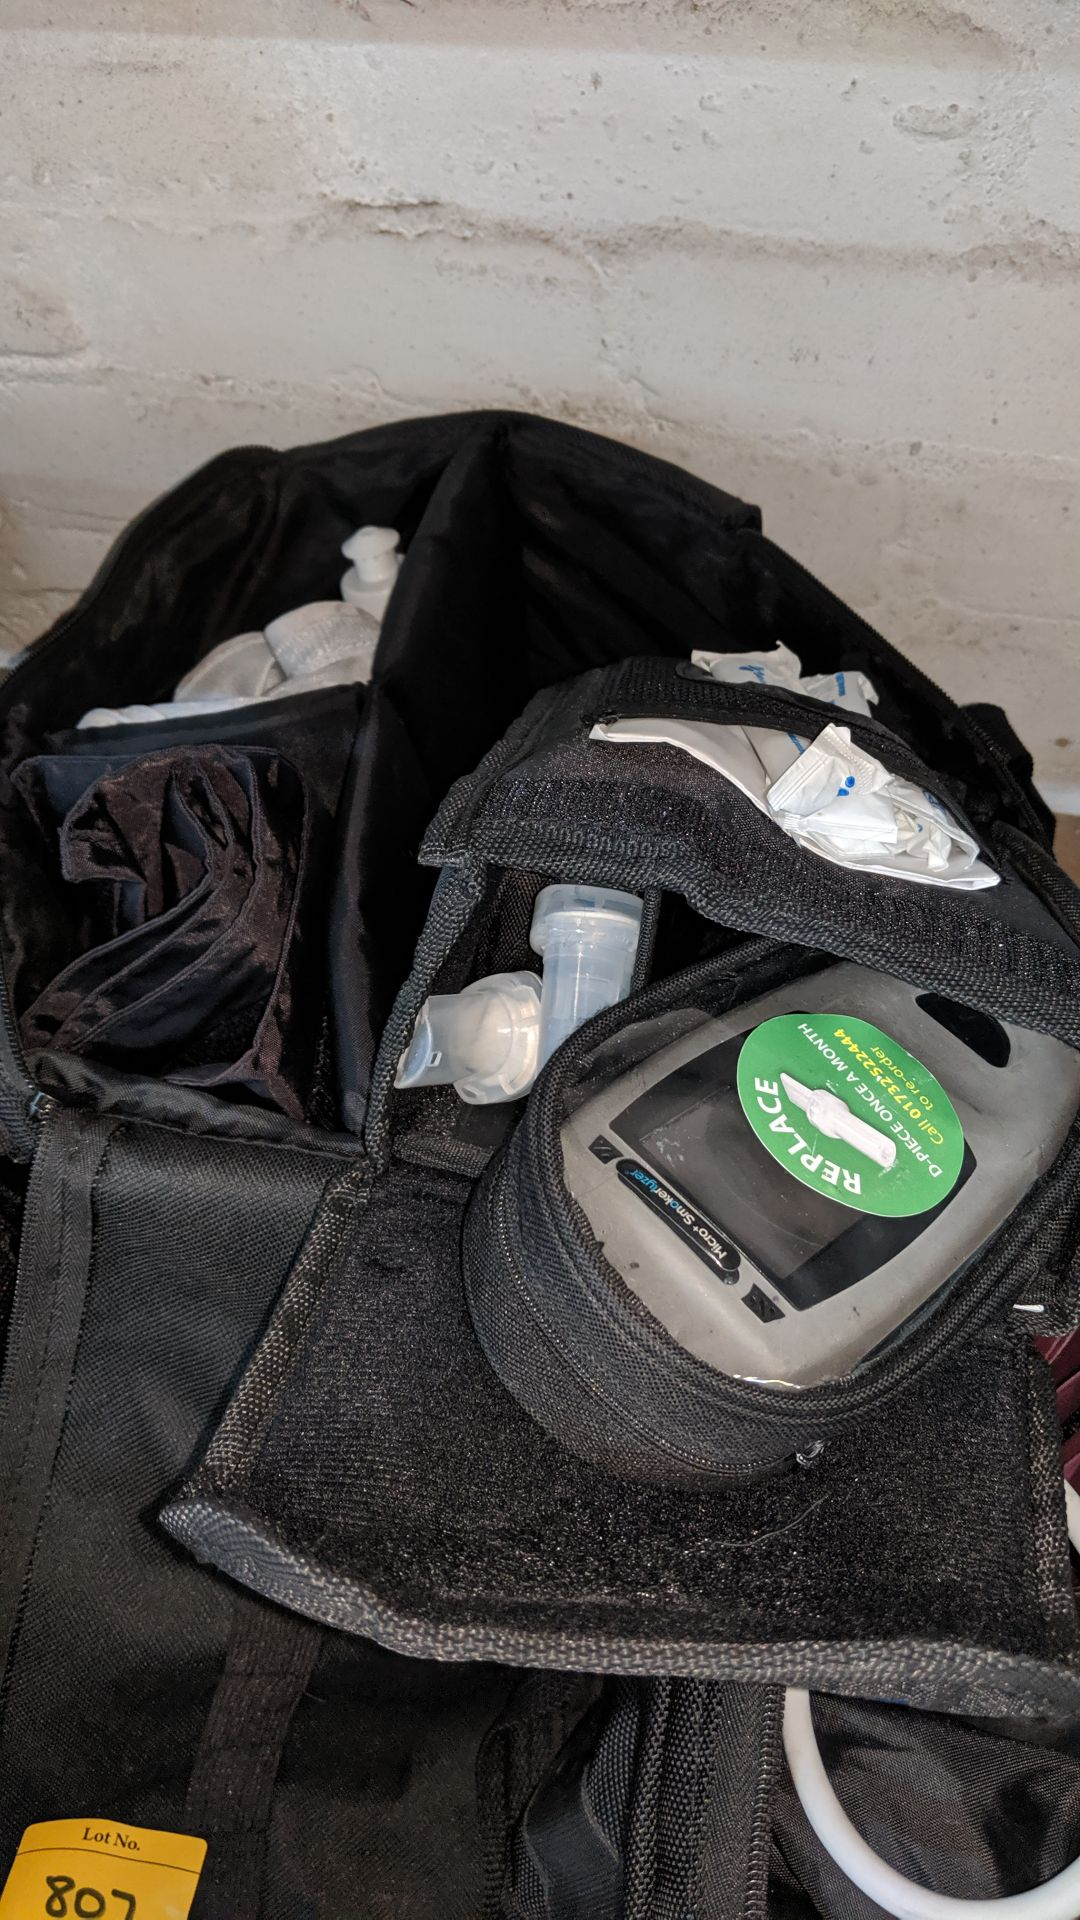 Lot 807 - 3 off medical bags & contents, each bag typically containing some or all of the following items -